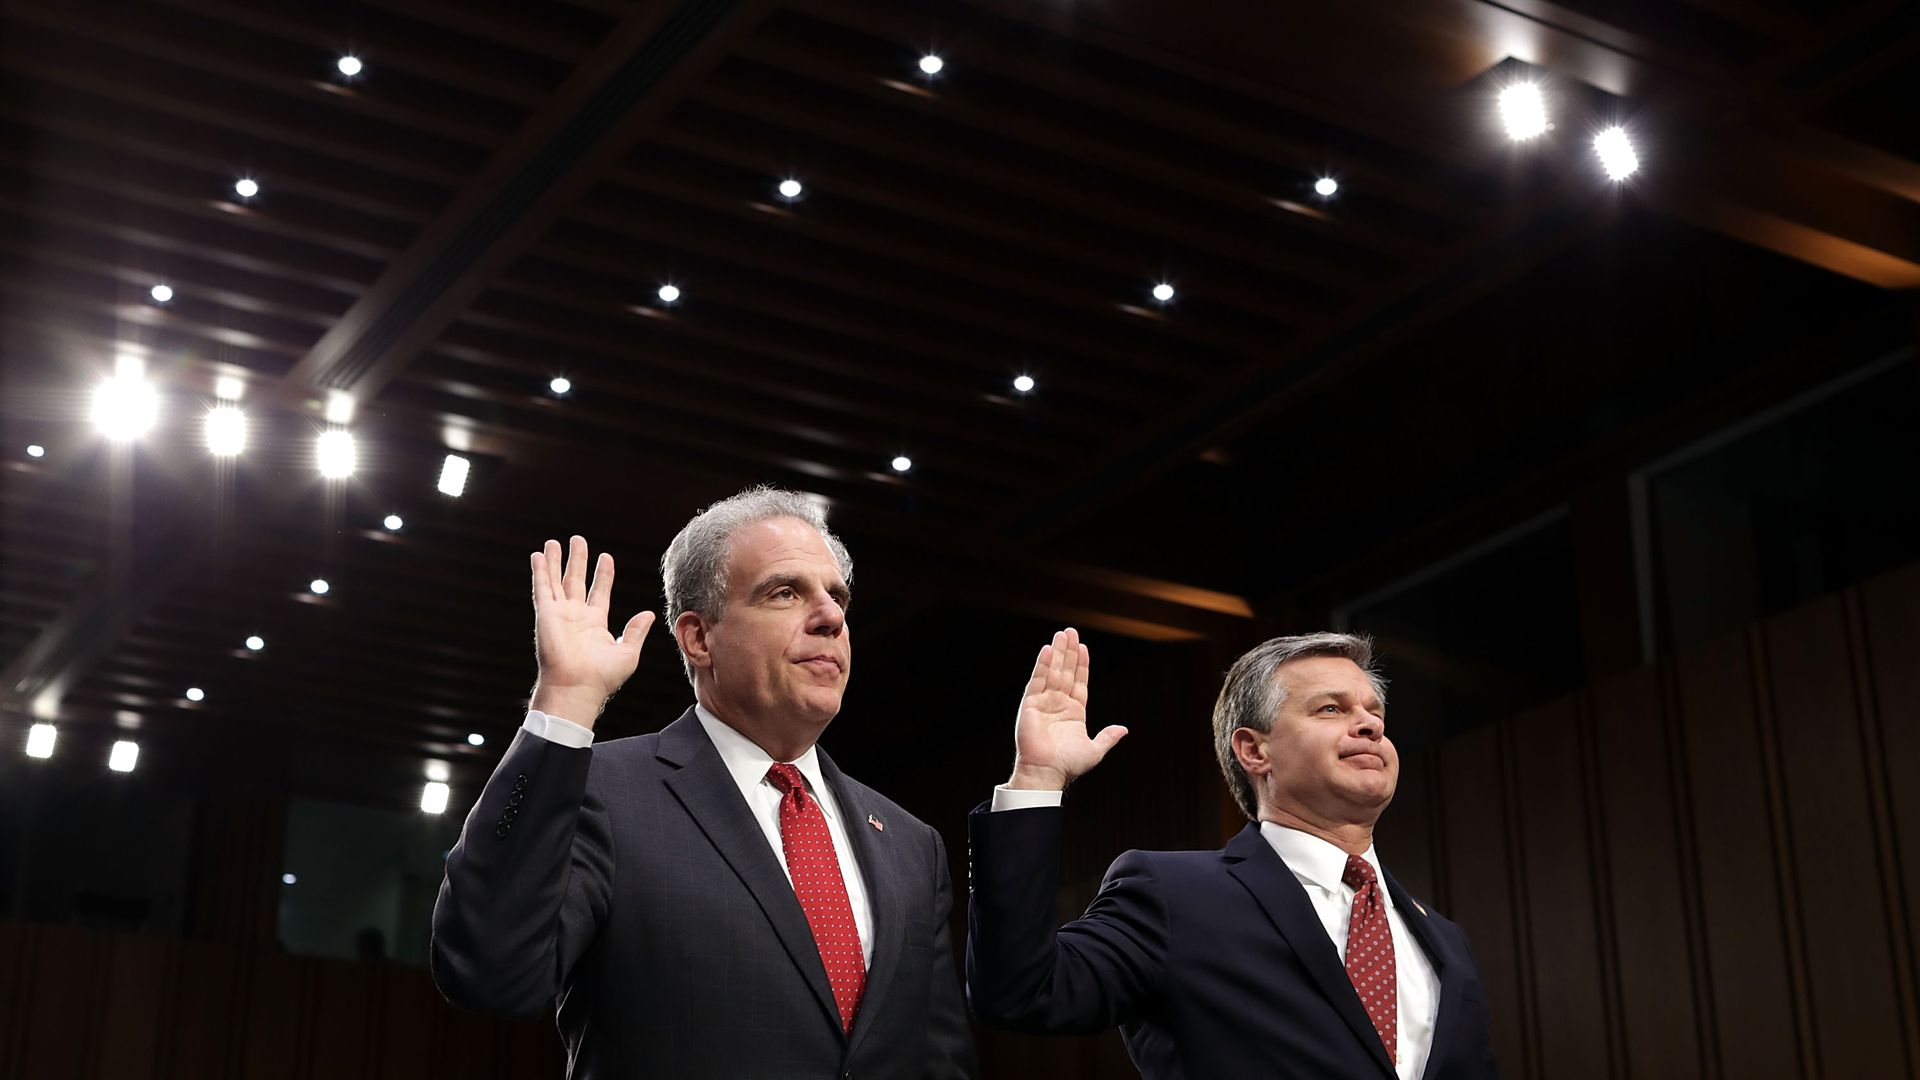 Justice Department Inspector General Michael Horowitz and FBI Director Christopher Wray are sworn in before testifying to the Senate Judiciary Committee